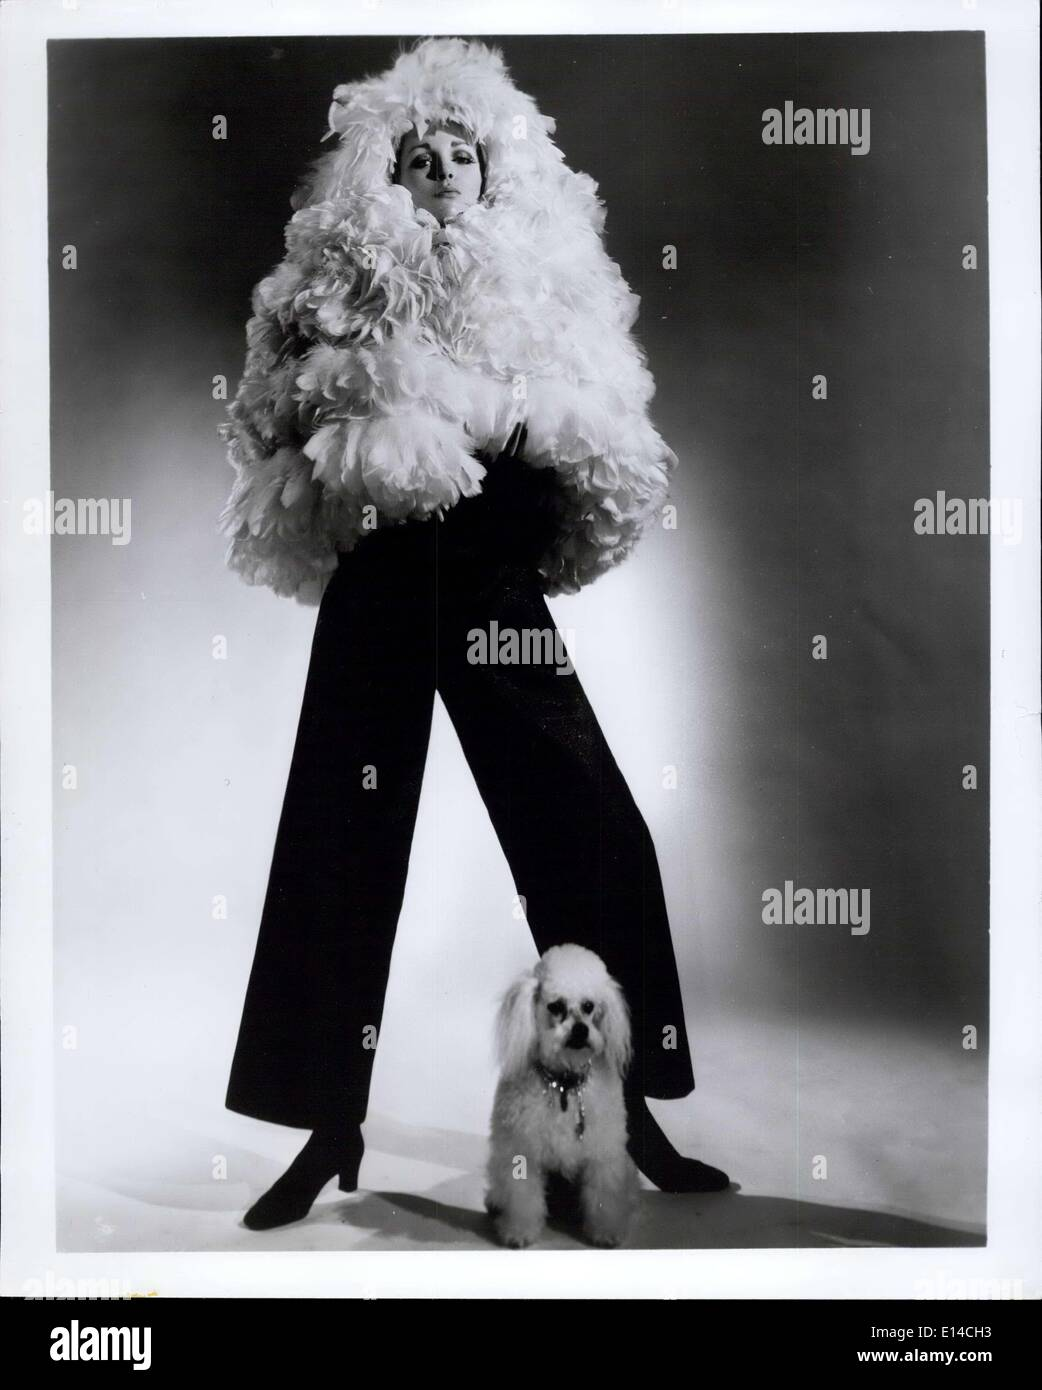 Apr. 17, 2012 - The grand entrance by Werle... The cape a fluff of Coq feathers topping the long sleeved-evening pants-all in one of luxurious strinque. Sizes 8 to 14. To retail about 95.00. - Stock Image